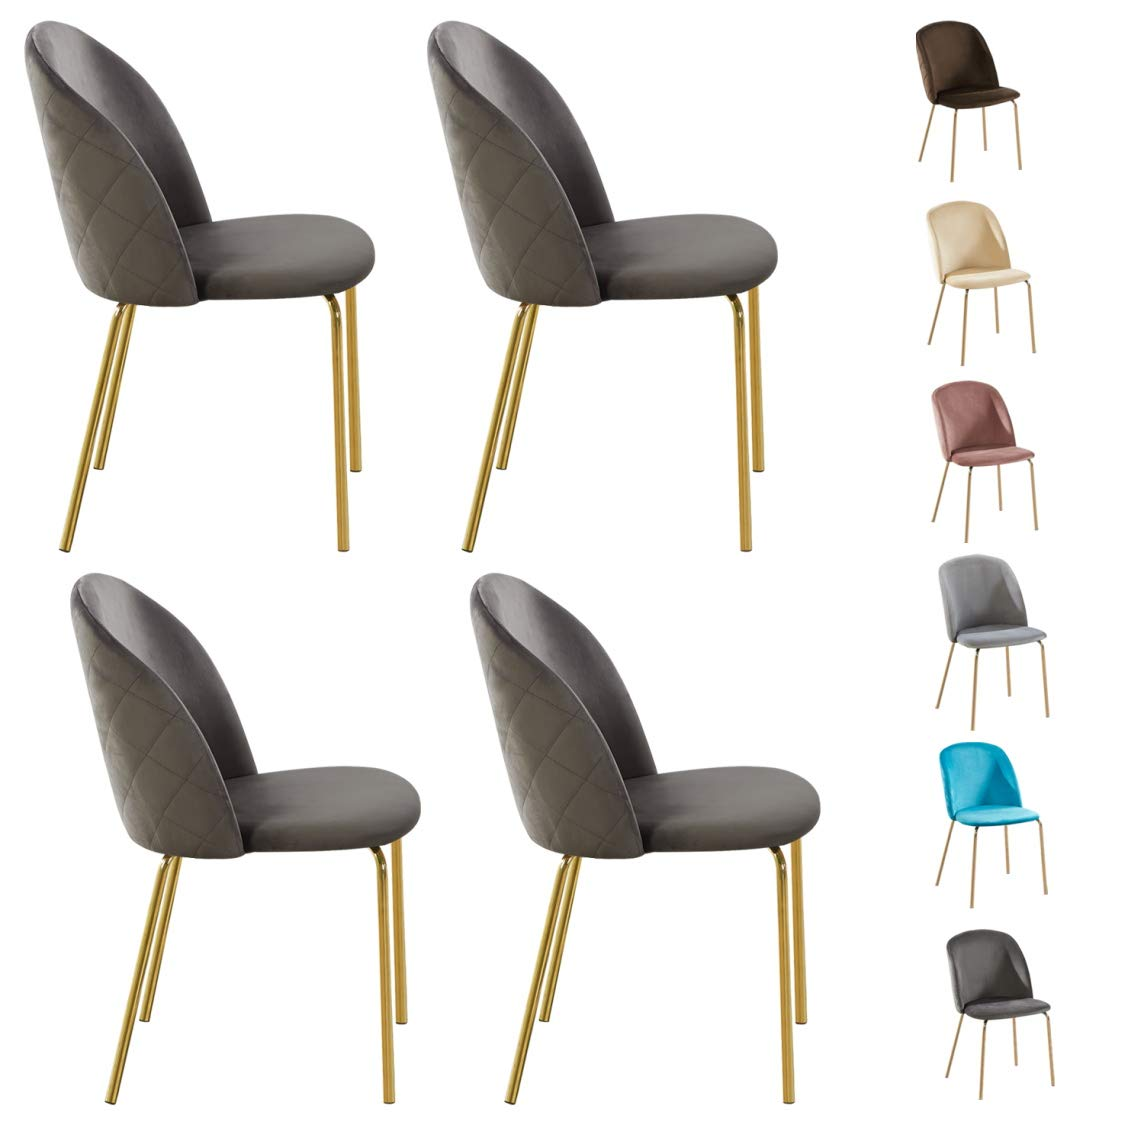 225 & Set of 4 Velvet Dining Chairs with Golden Finish Metal Legs Living Room Chair Dale (Grey)